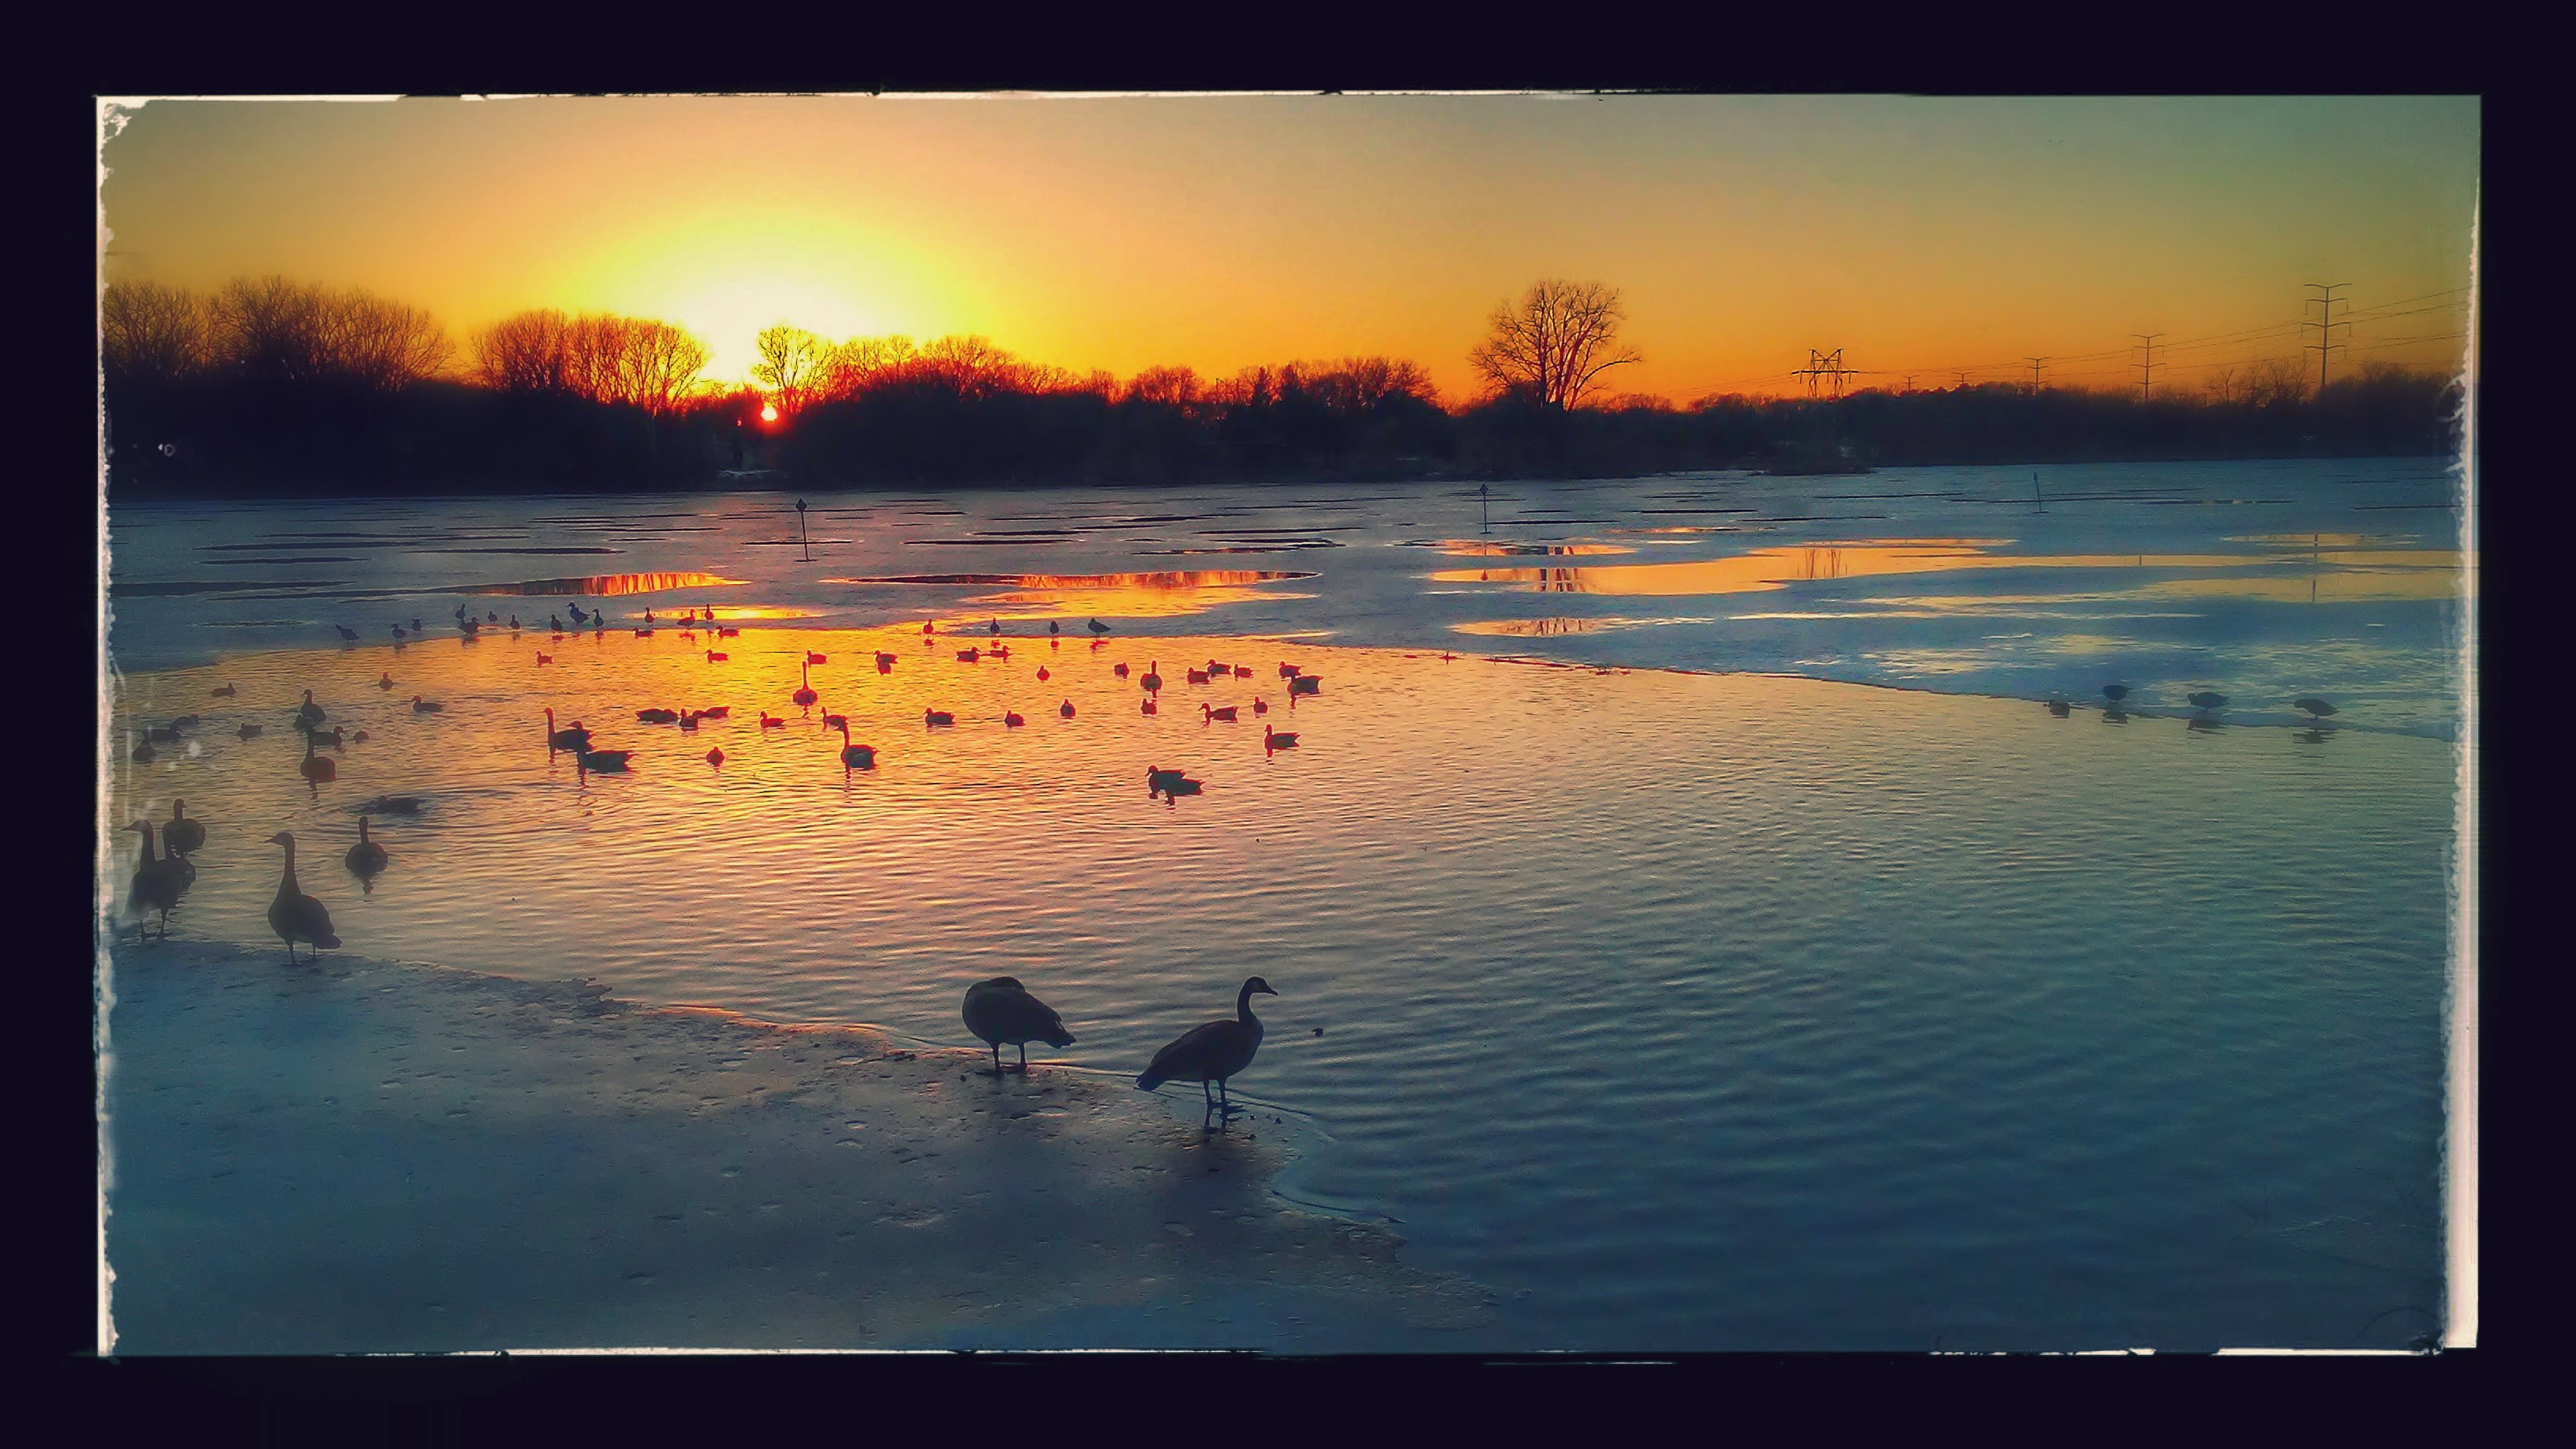 sunset on a lake with partial ice and geese